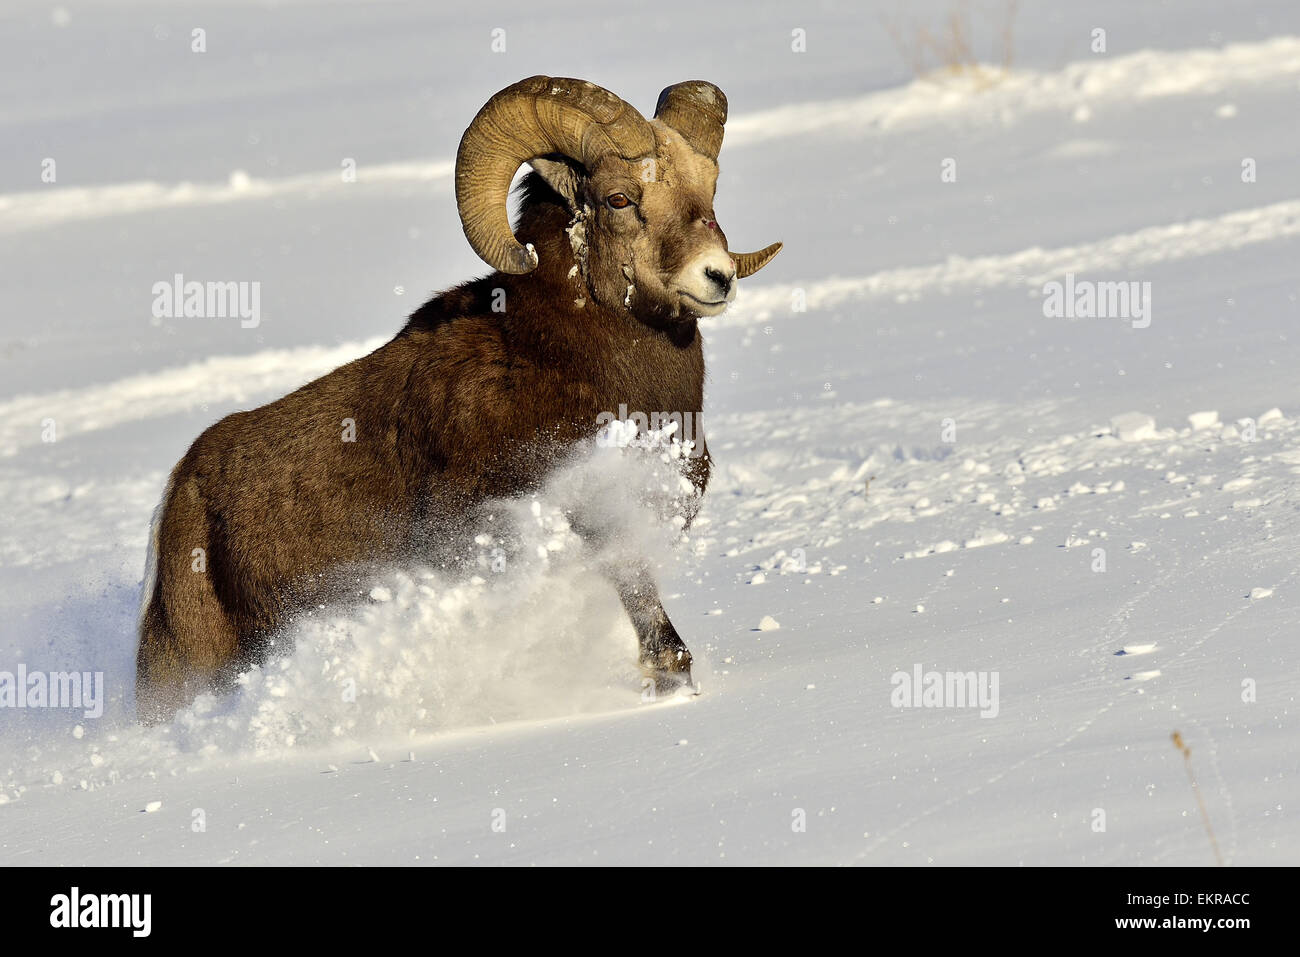 A mature bighorn sheep  'Orvis canadensis'   running through the deep snow - Stock Image